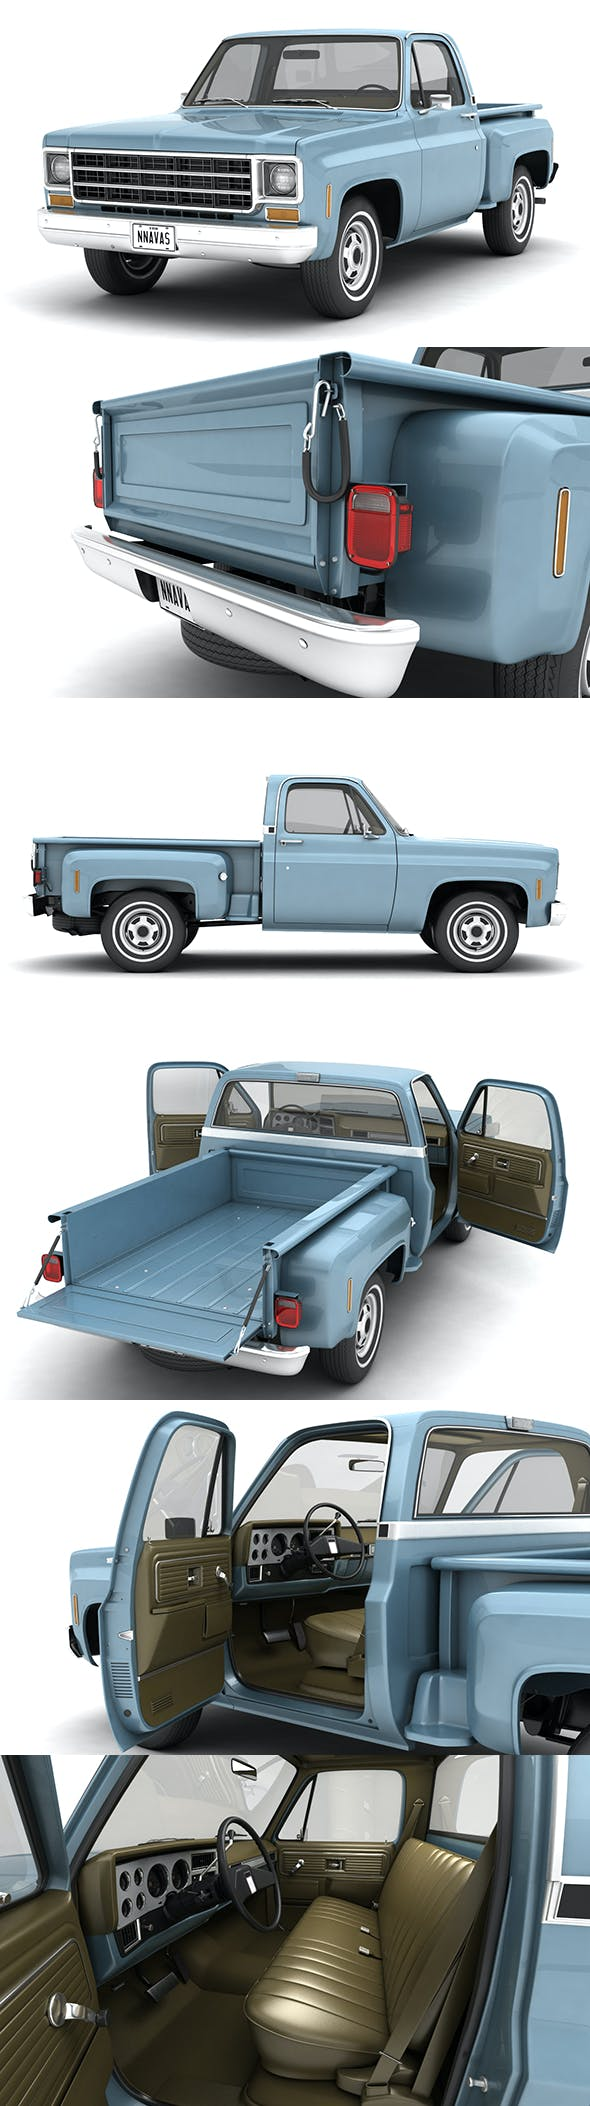 GENERIC STEPSIDE PICKUP TRUCK 10 - 3DOcean Item for Sale